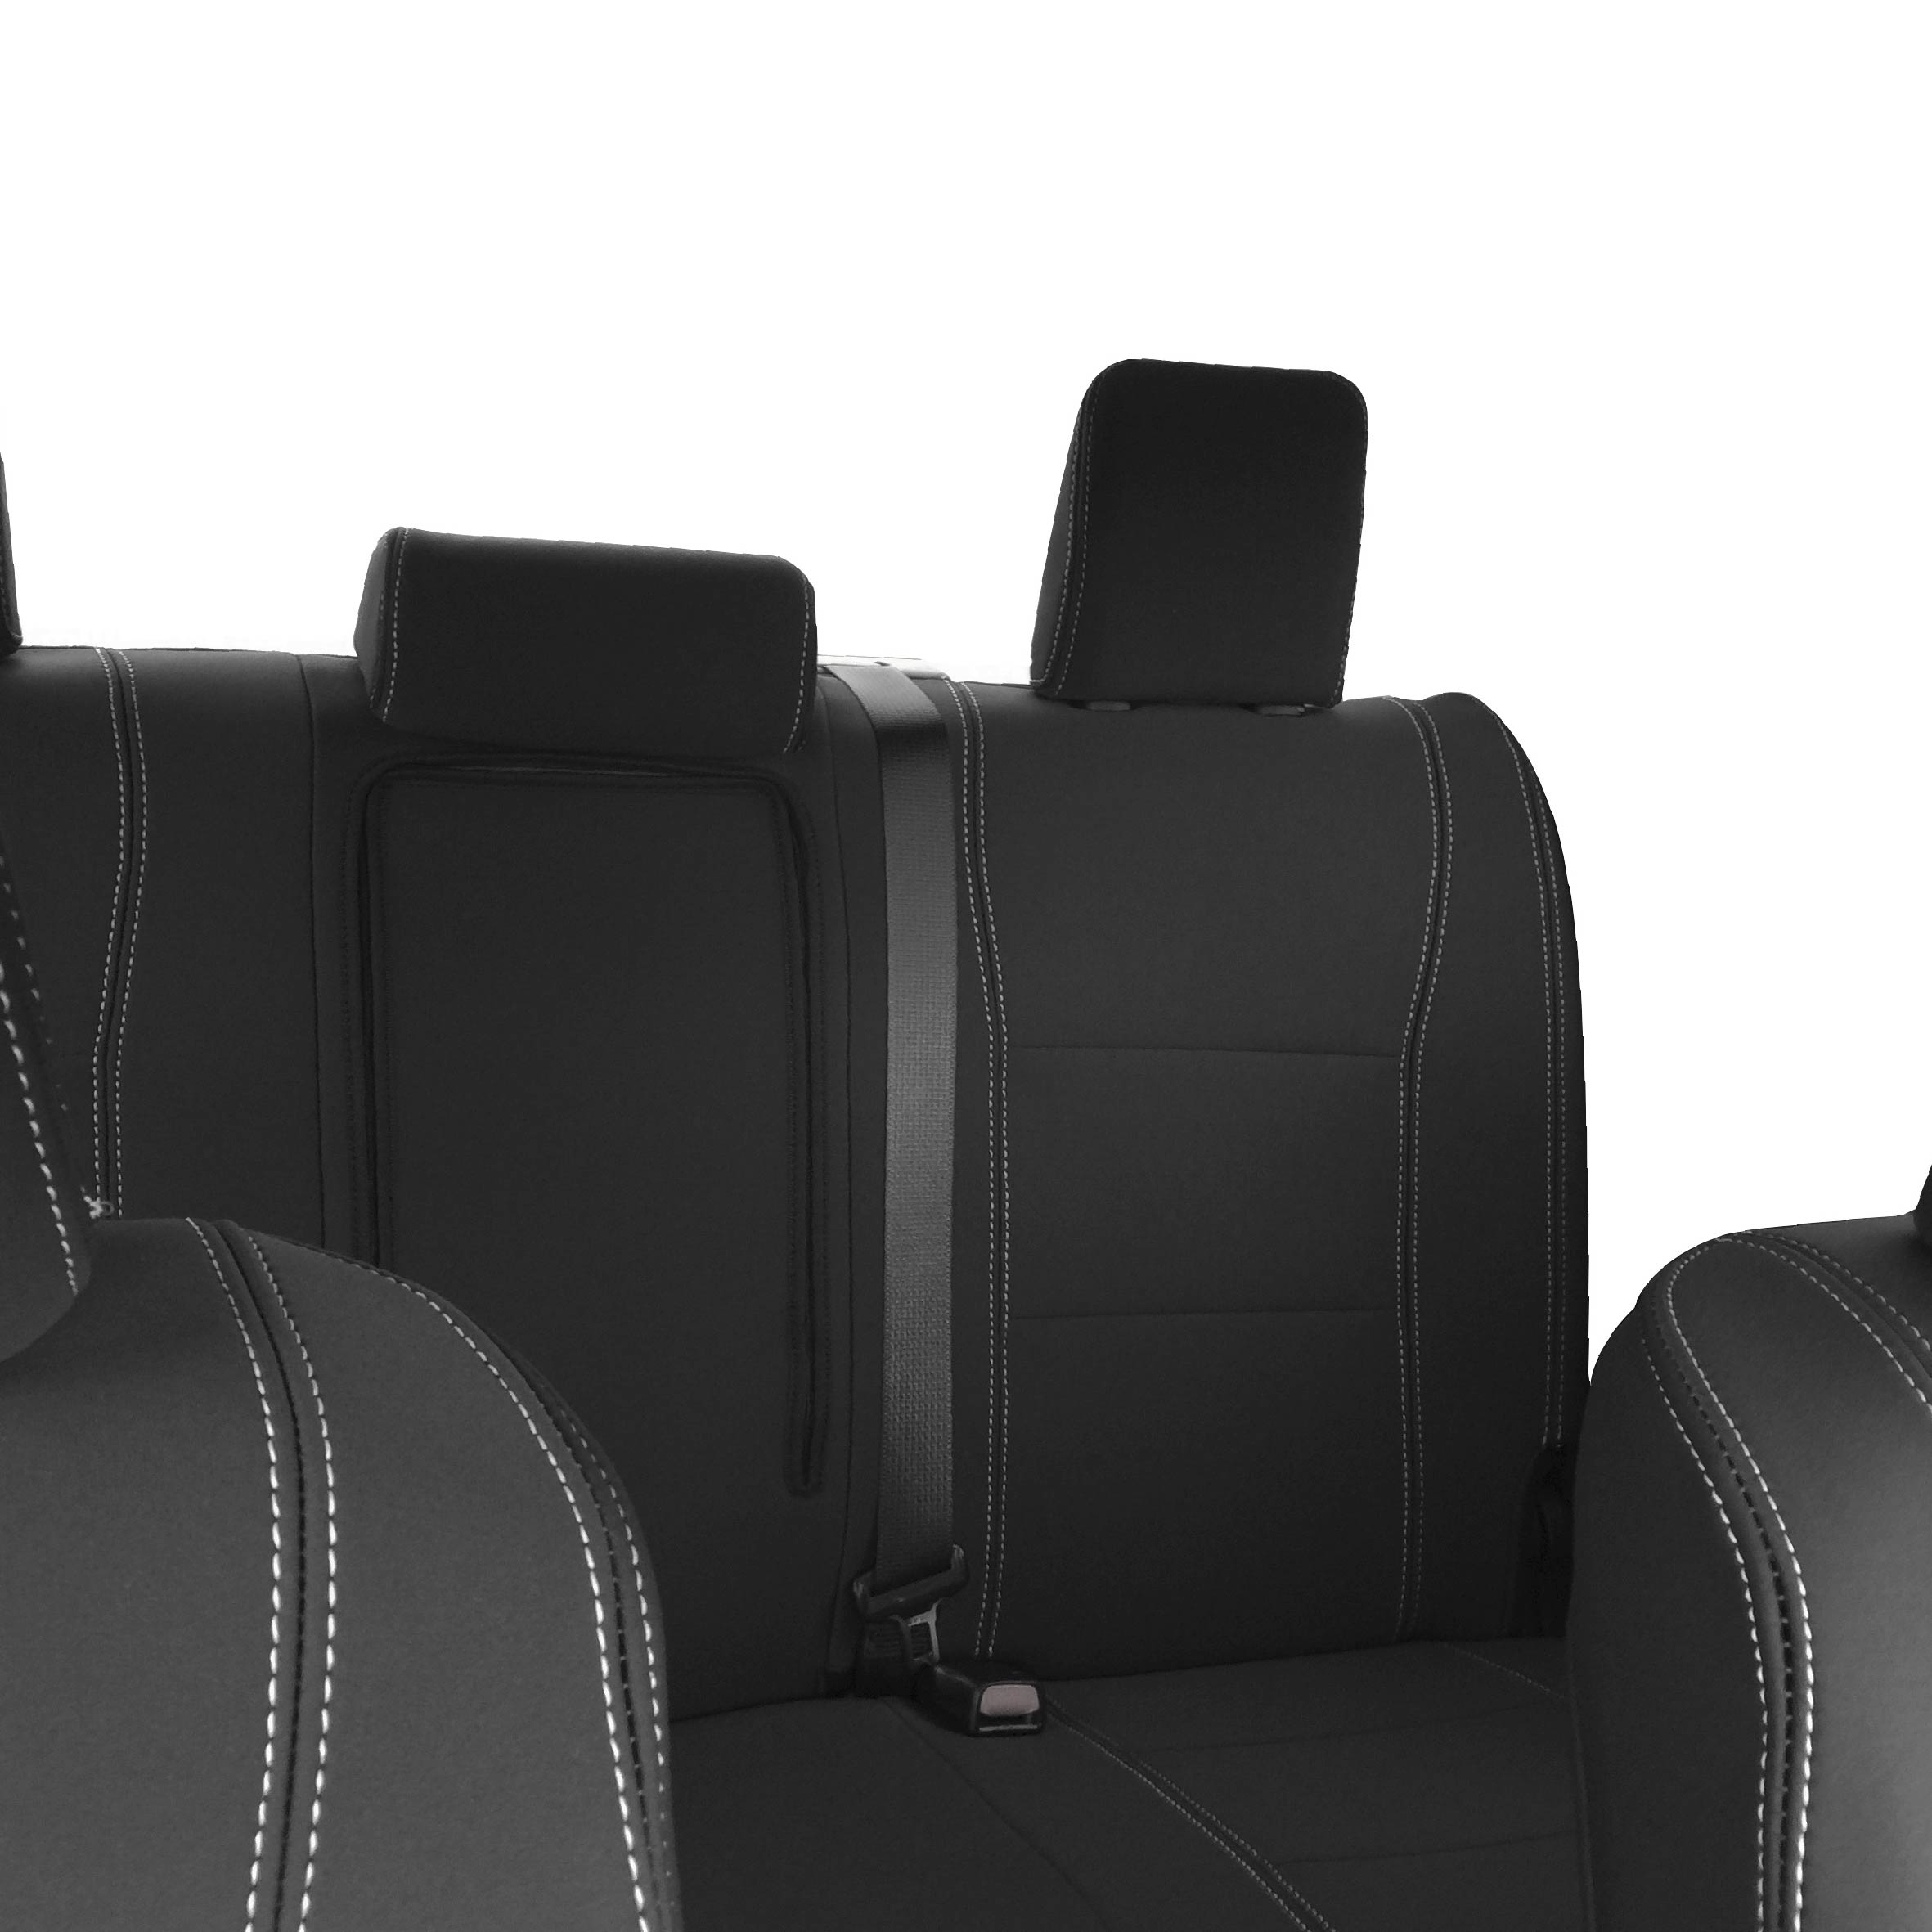 FORD GRAND C-MAX 10-ON HEAVY DUTY BLACK REAR WATERPROOF SEAT COVER